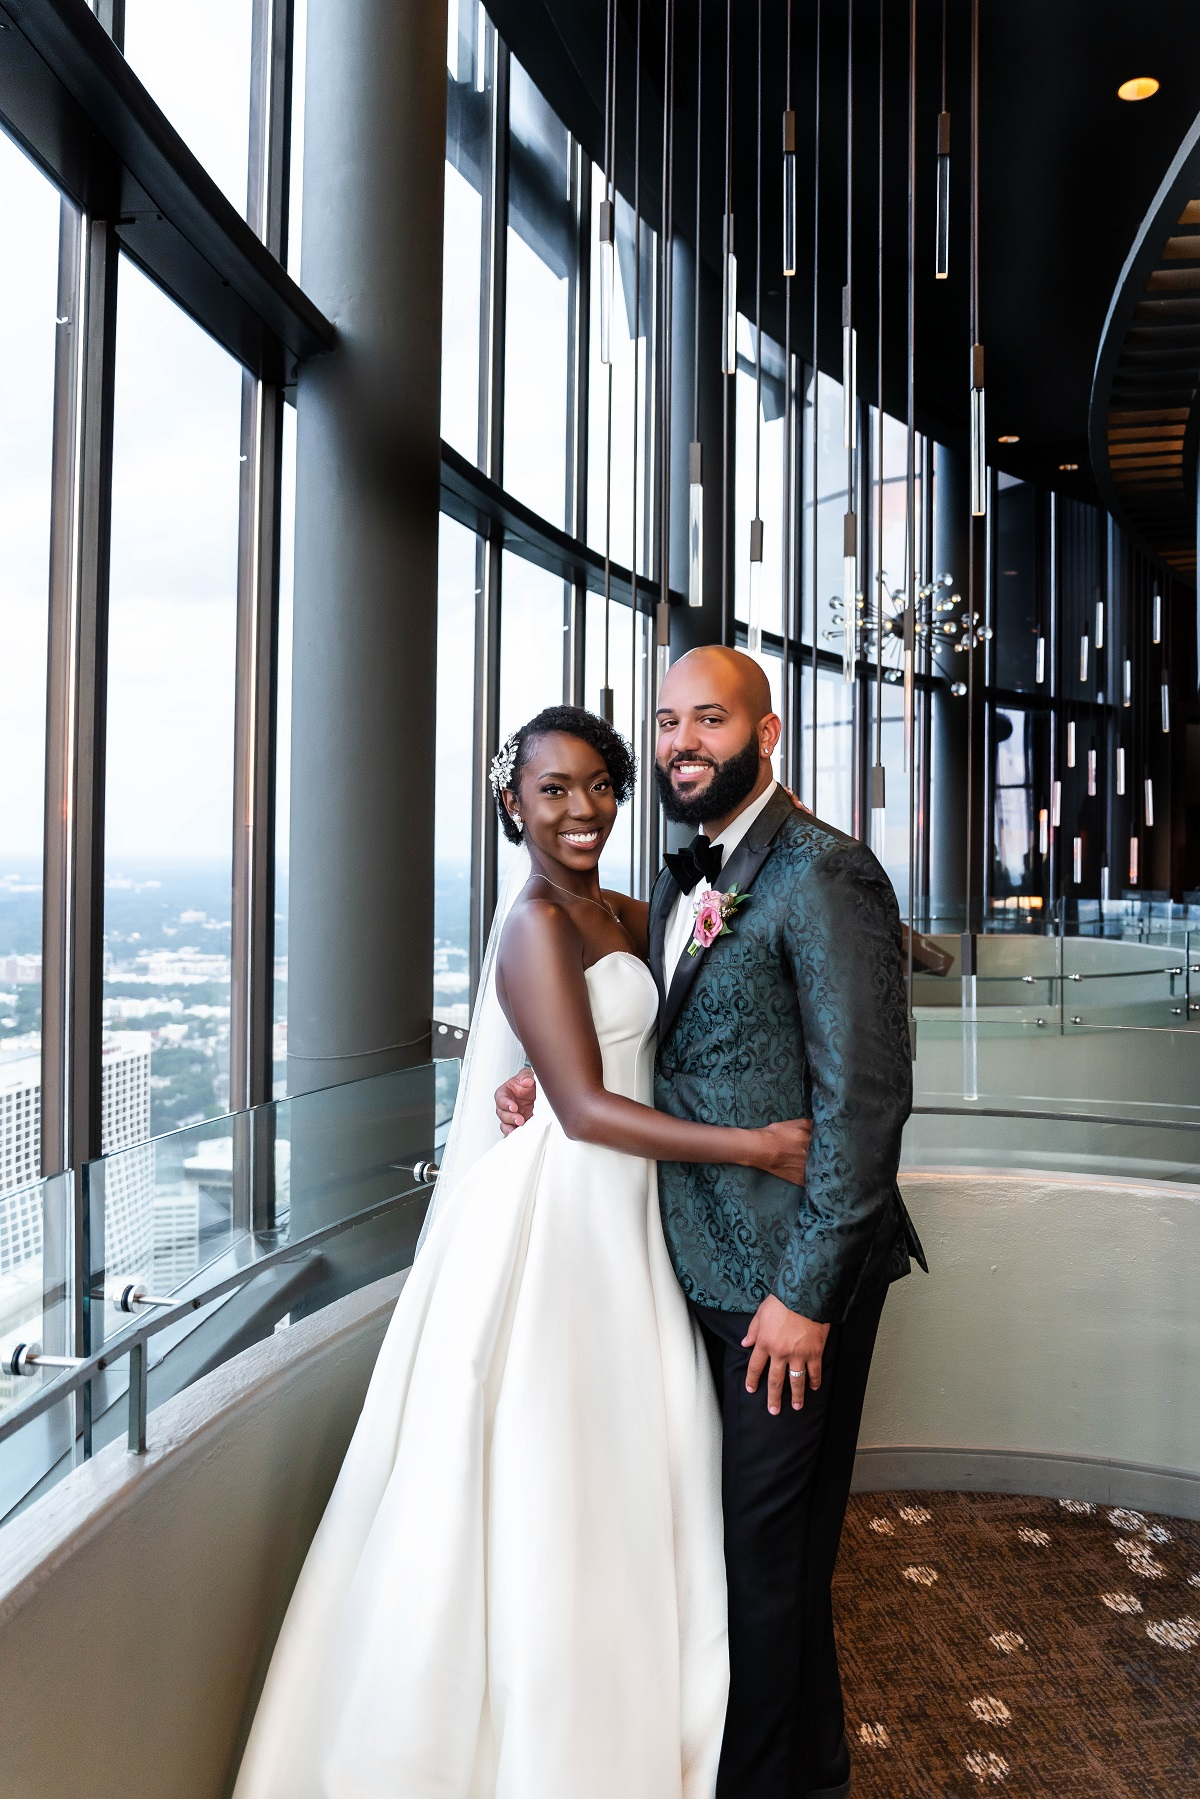 Briana and Vincent of 'Married at First Sight' smiling on their wedding day